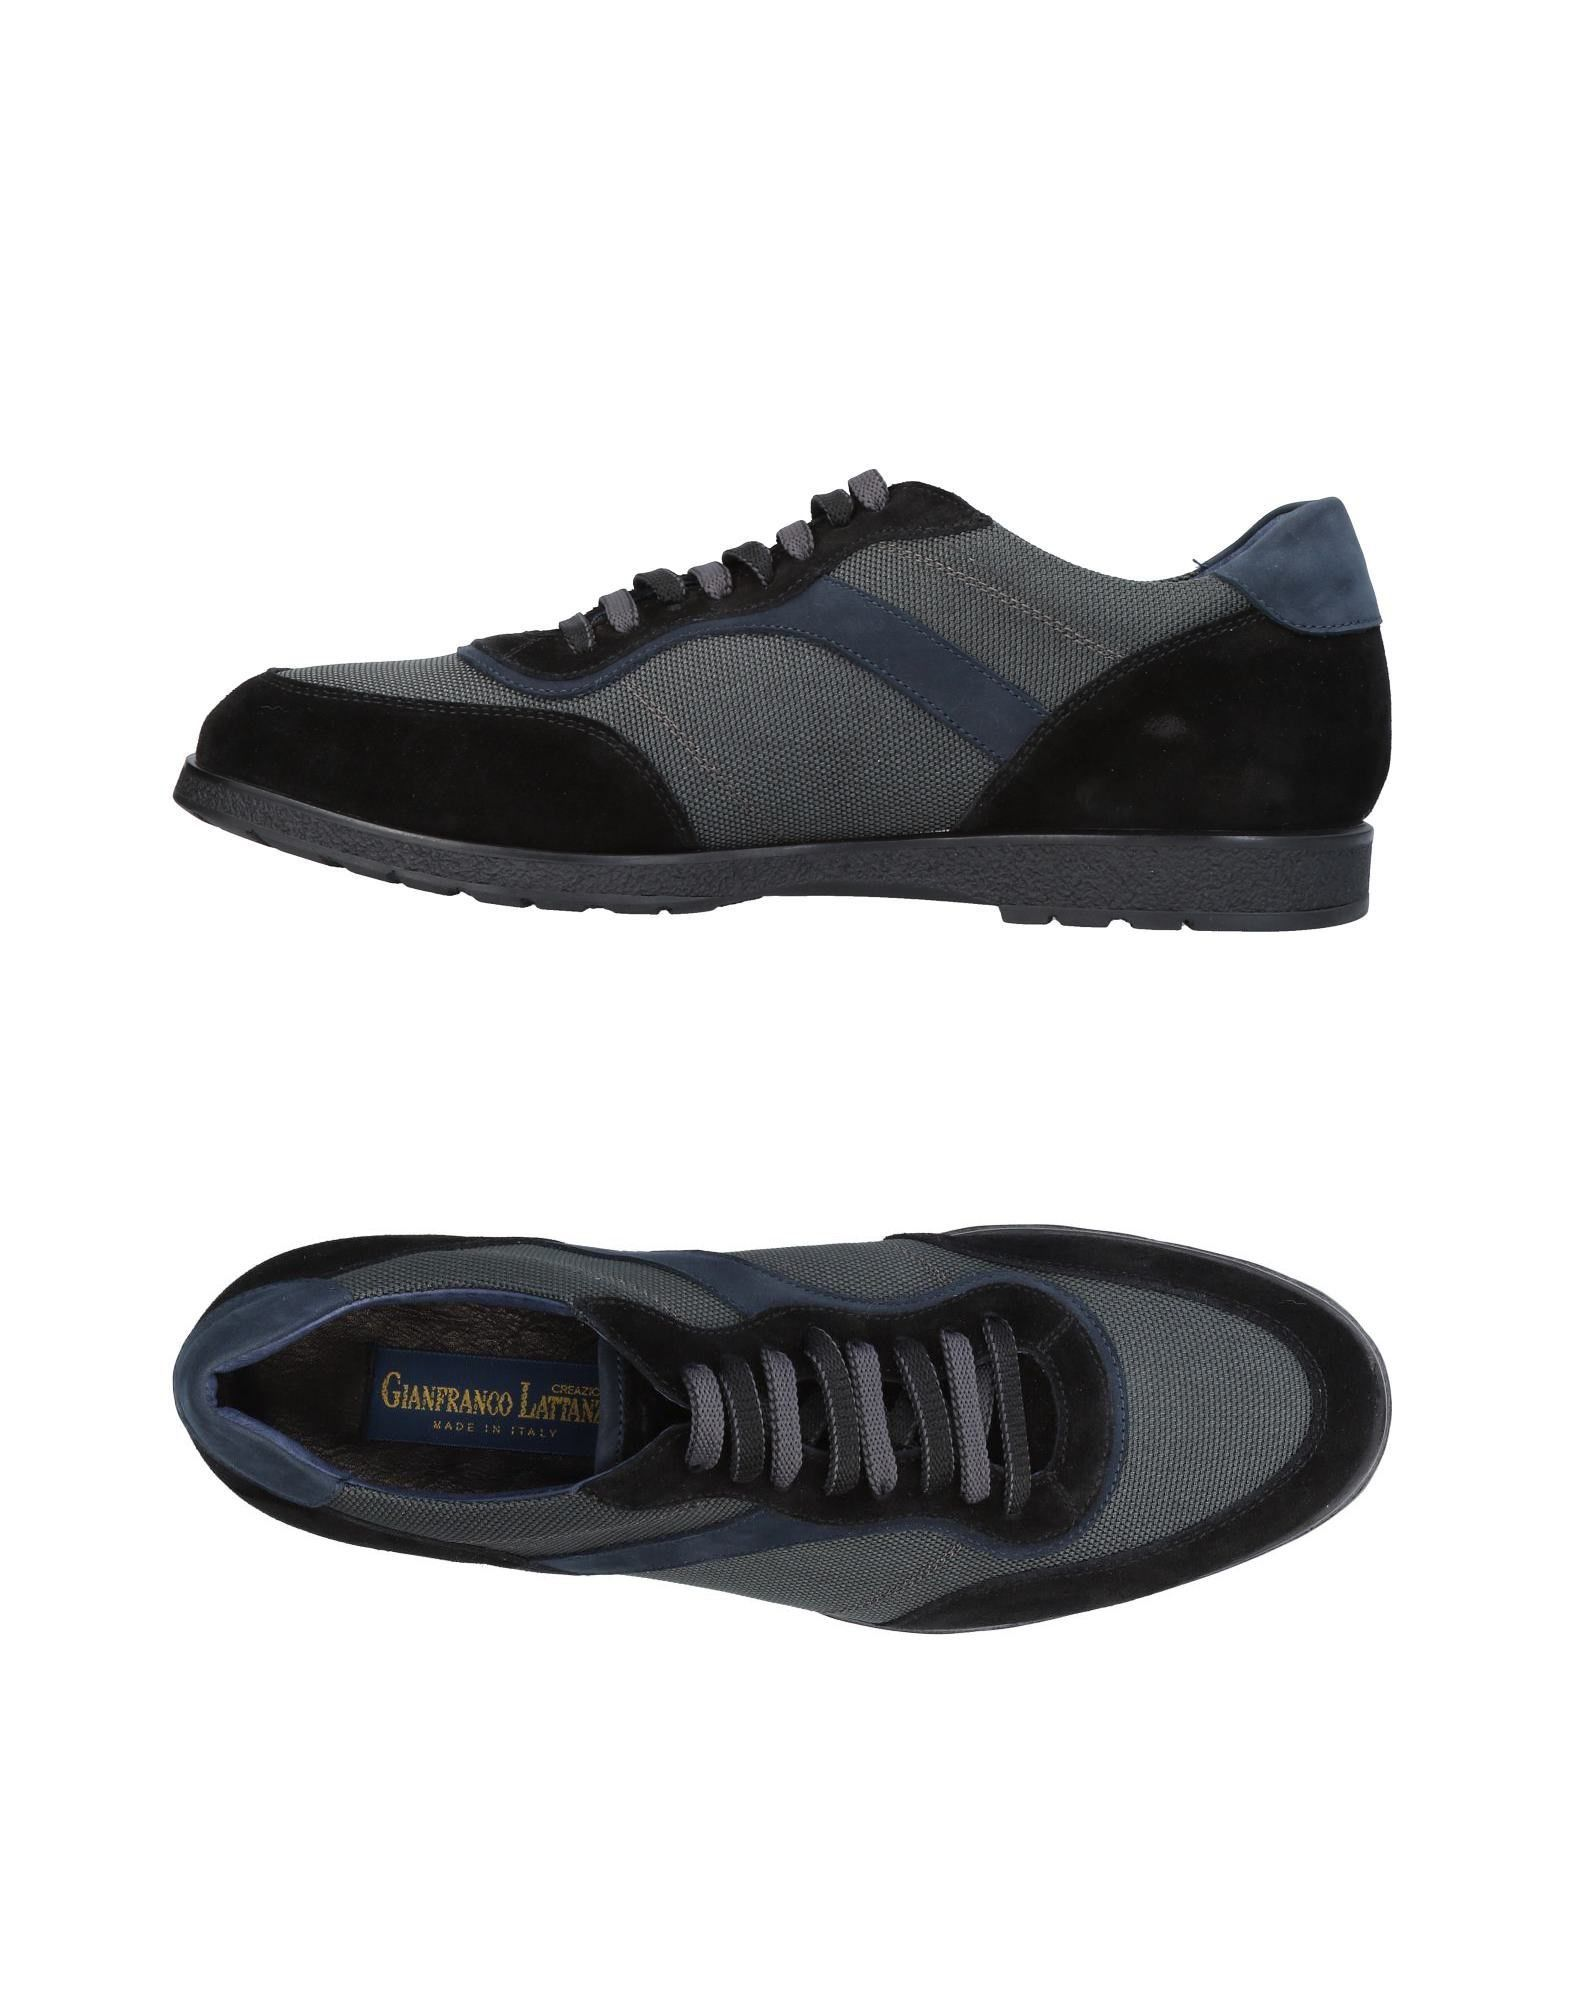 Sneakers Gianfranco Lattanzi Homme - Sneakers Gianfranco Lattanzi  Noir Chaussures casual sauvages